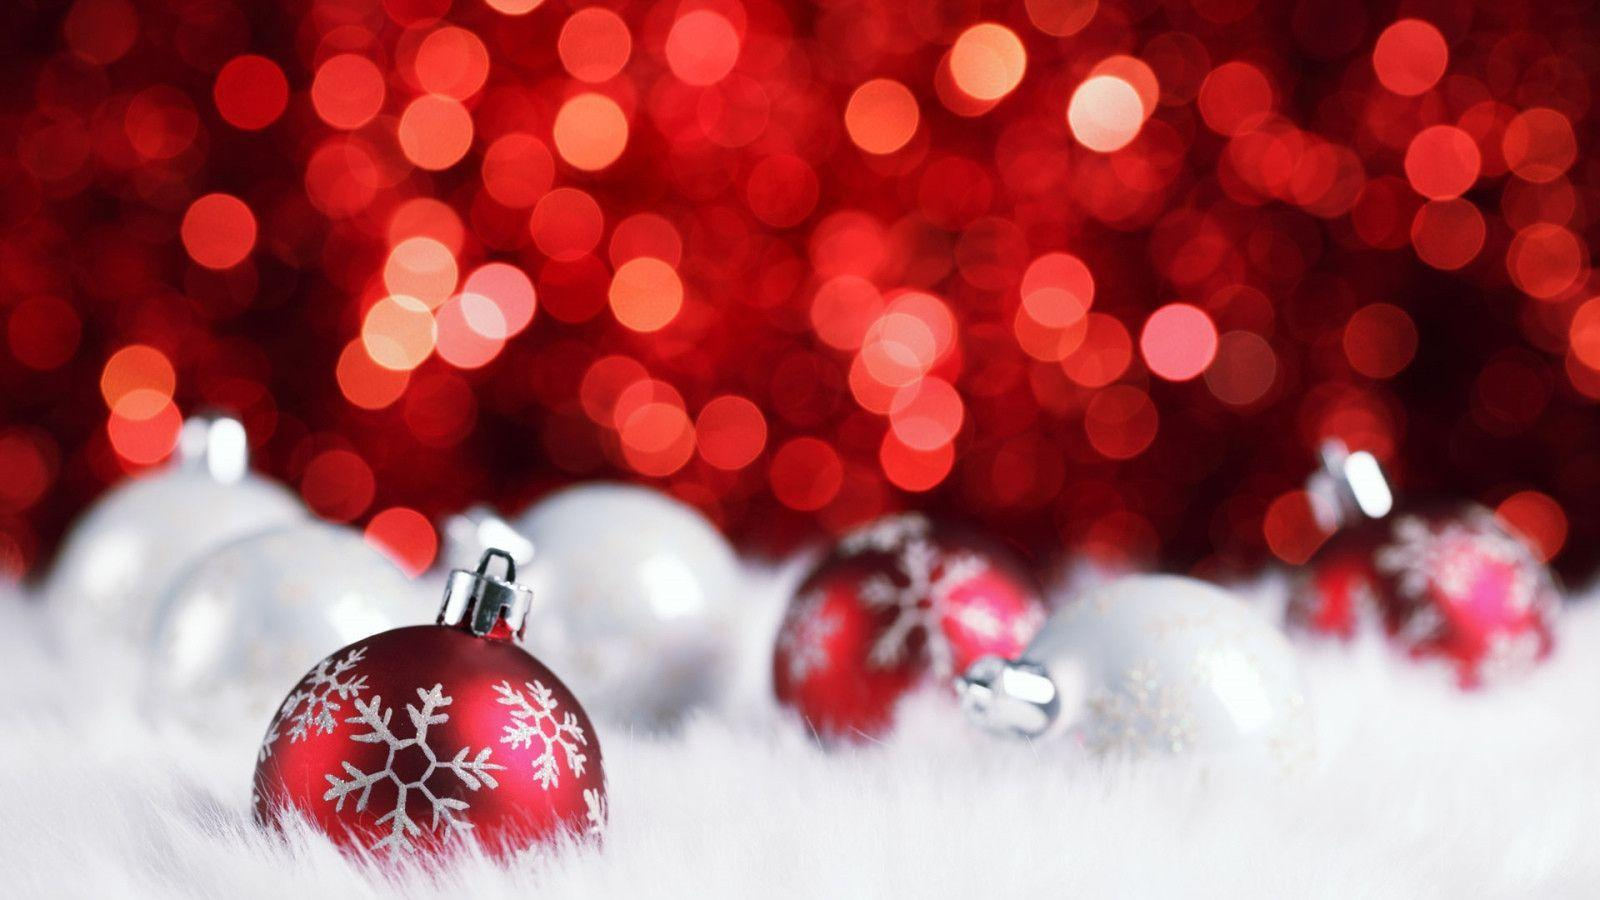 Nice Christmas Ornaments And Red Glitter Widescreen Wallpaper